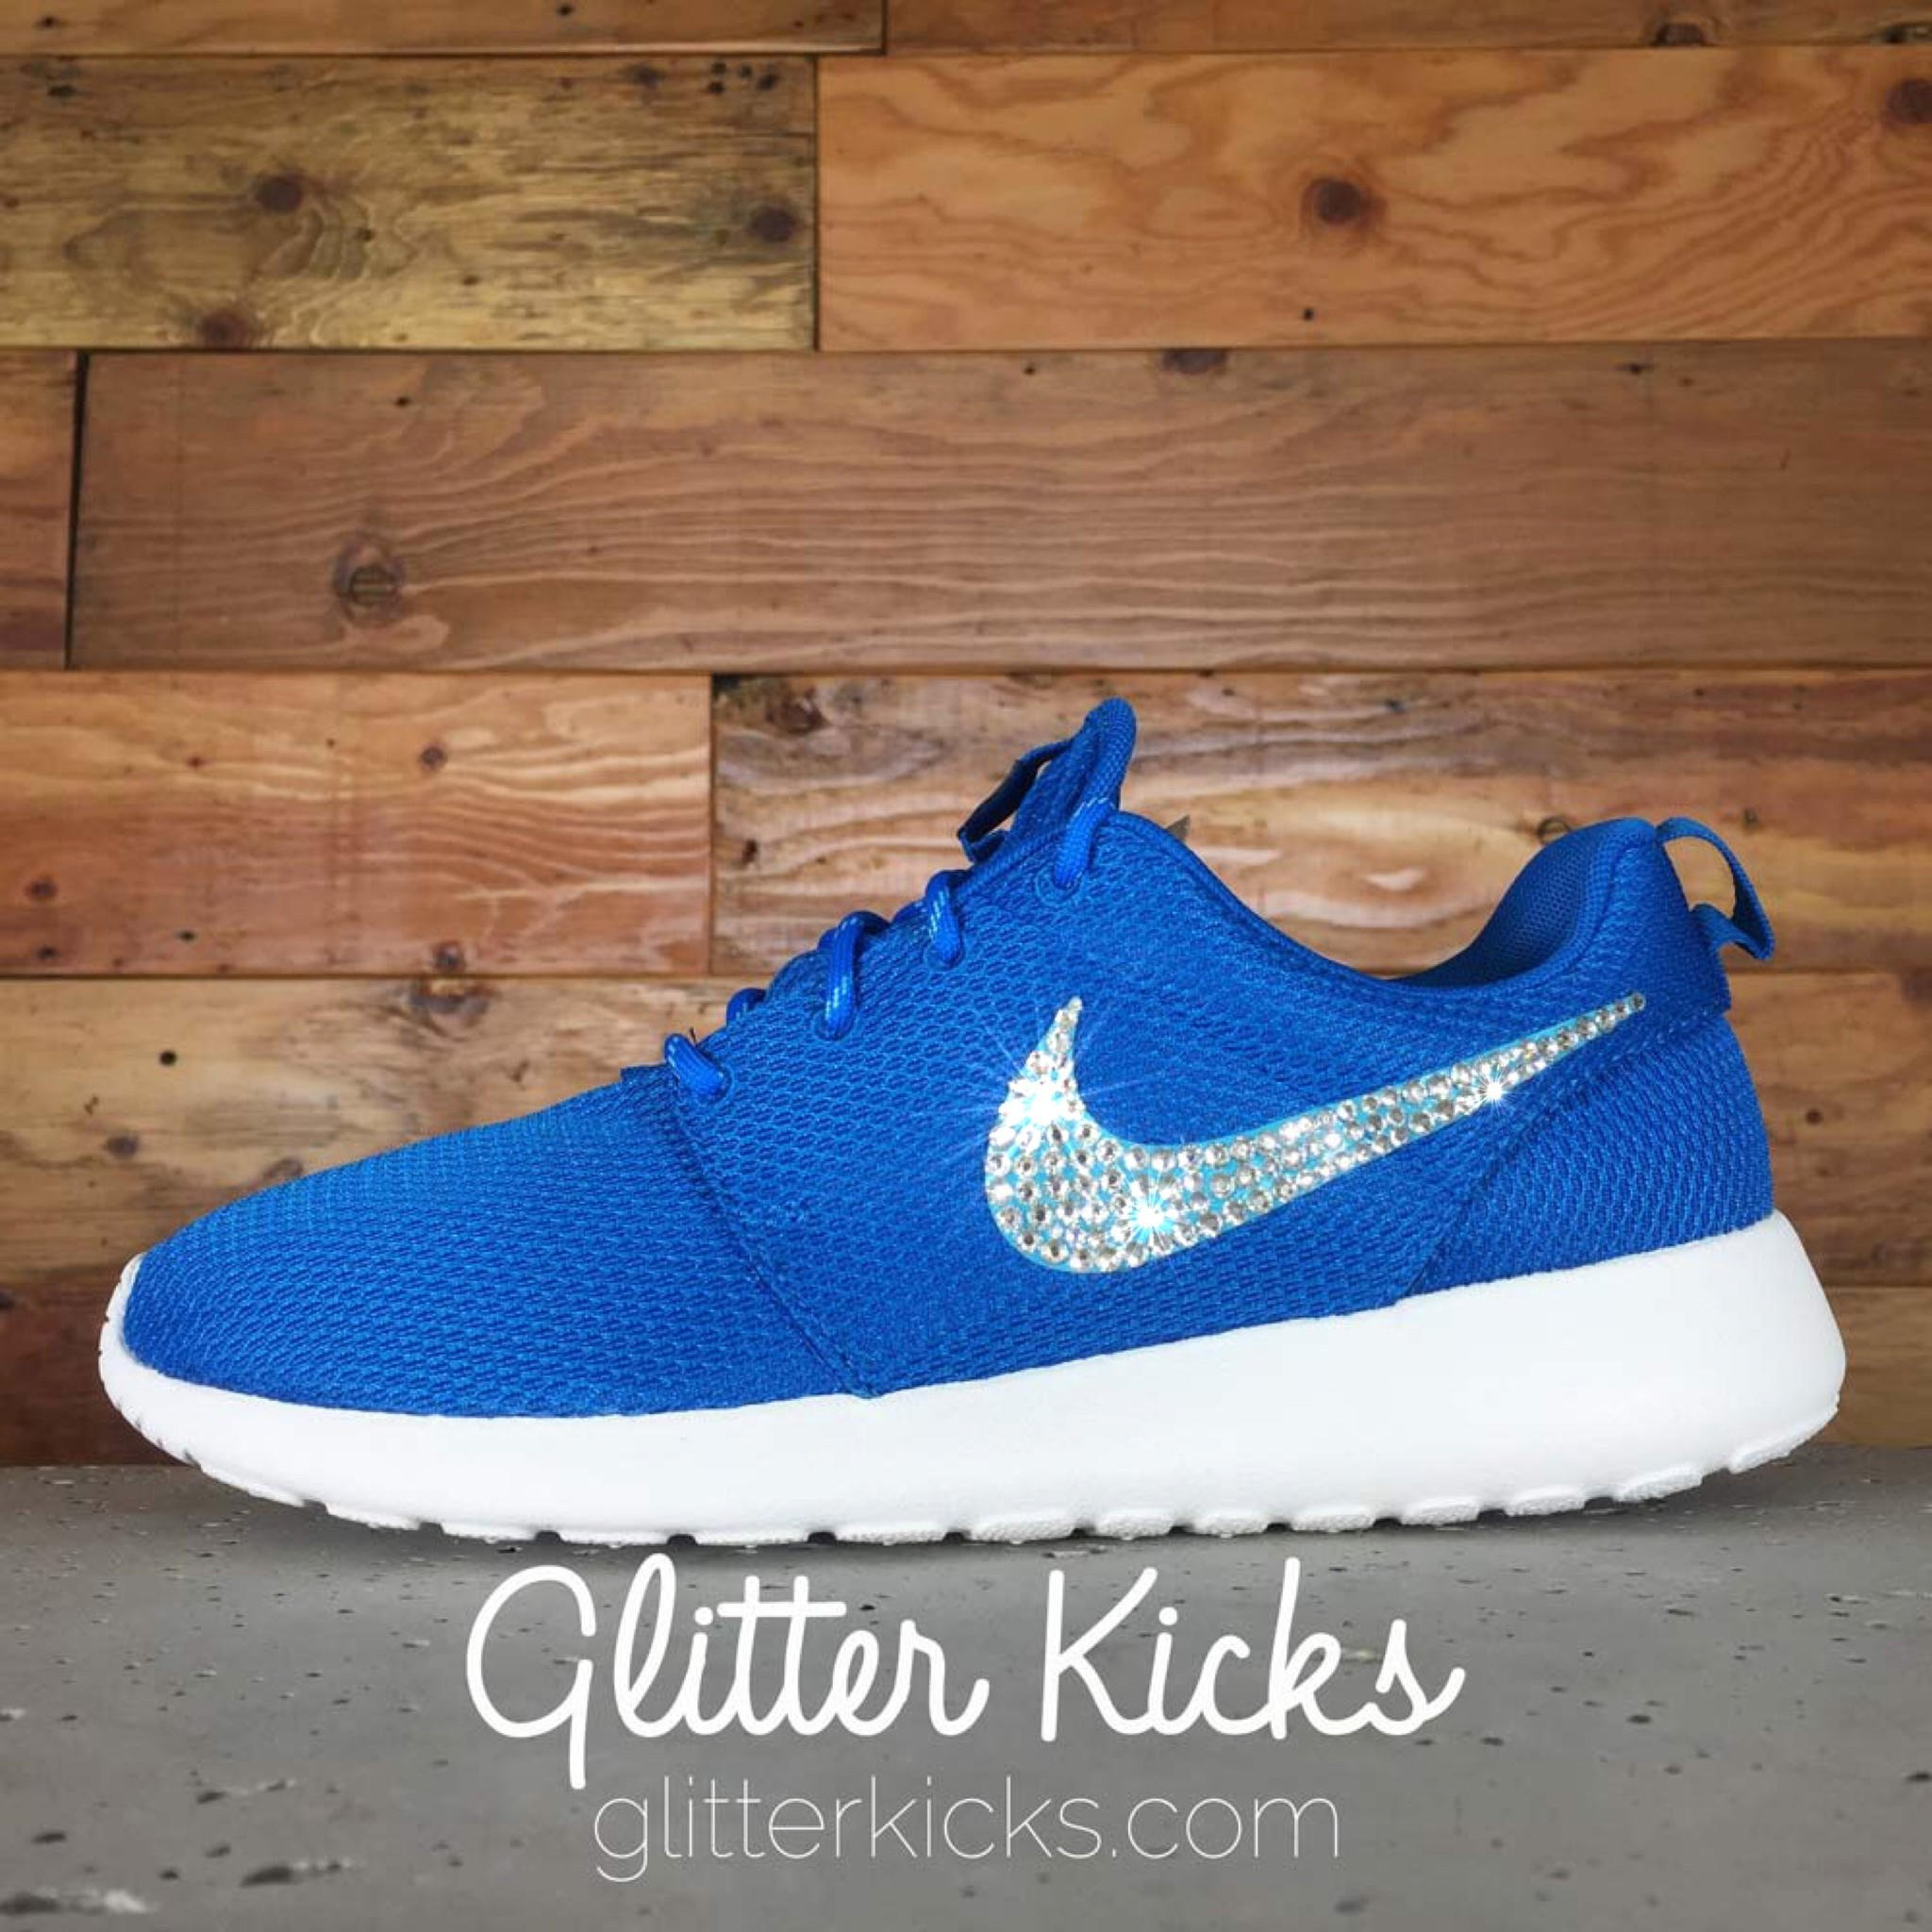 907965e50 Nike Roshe One Customized by Glitter from Glitter Kicks